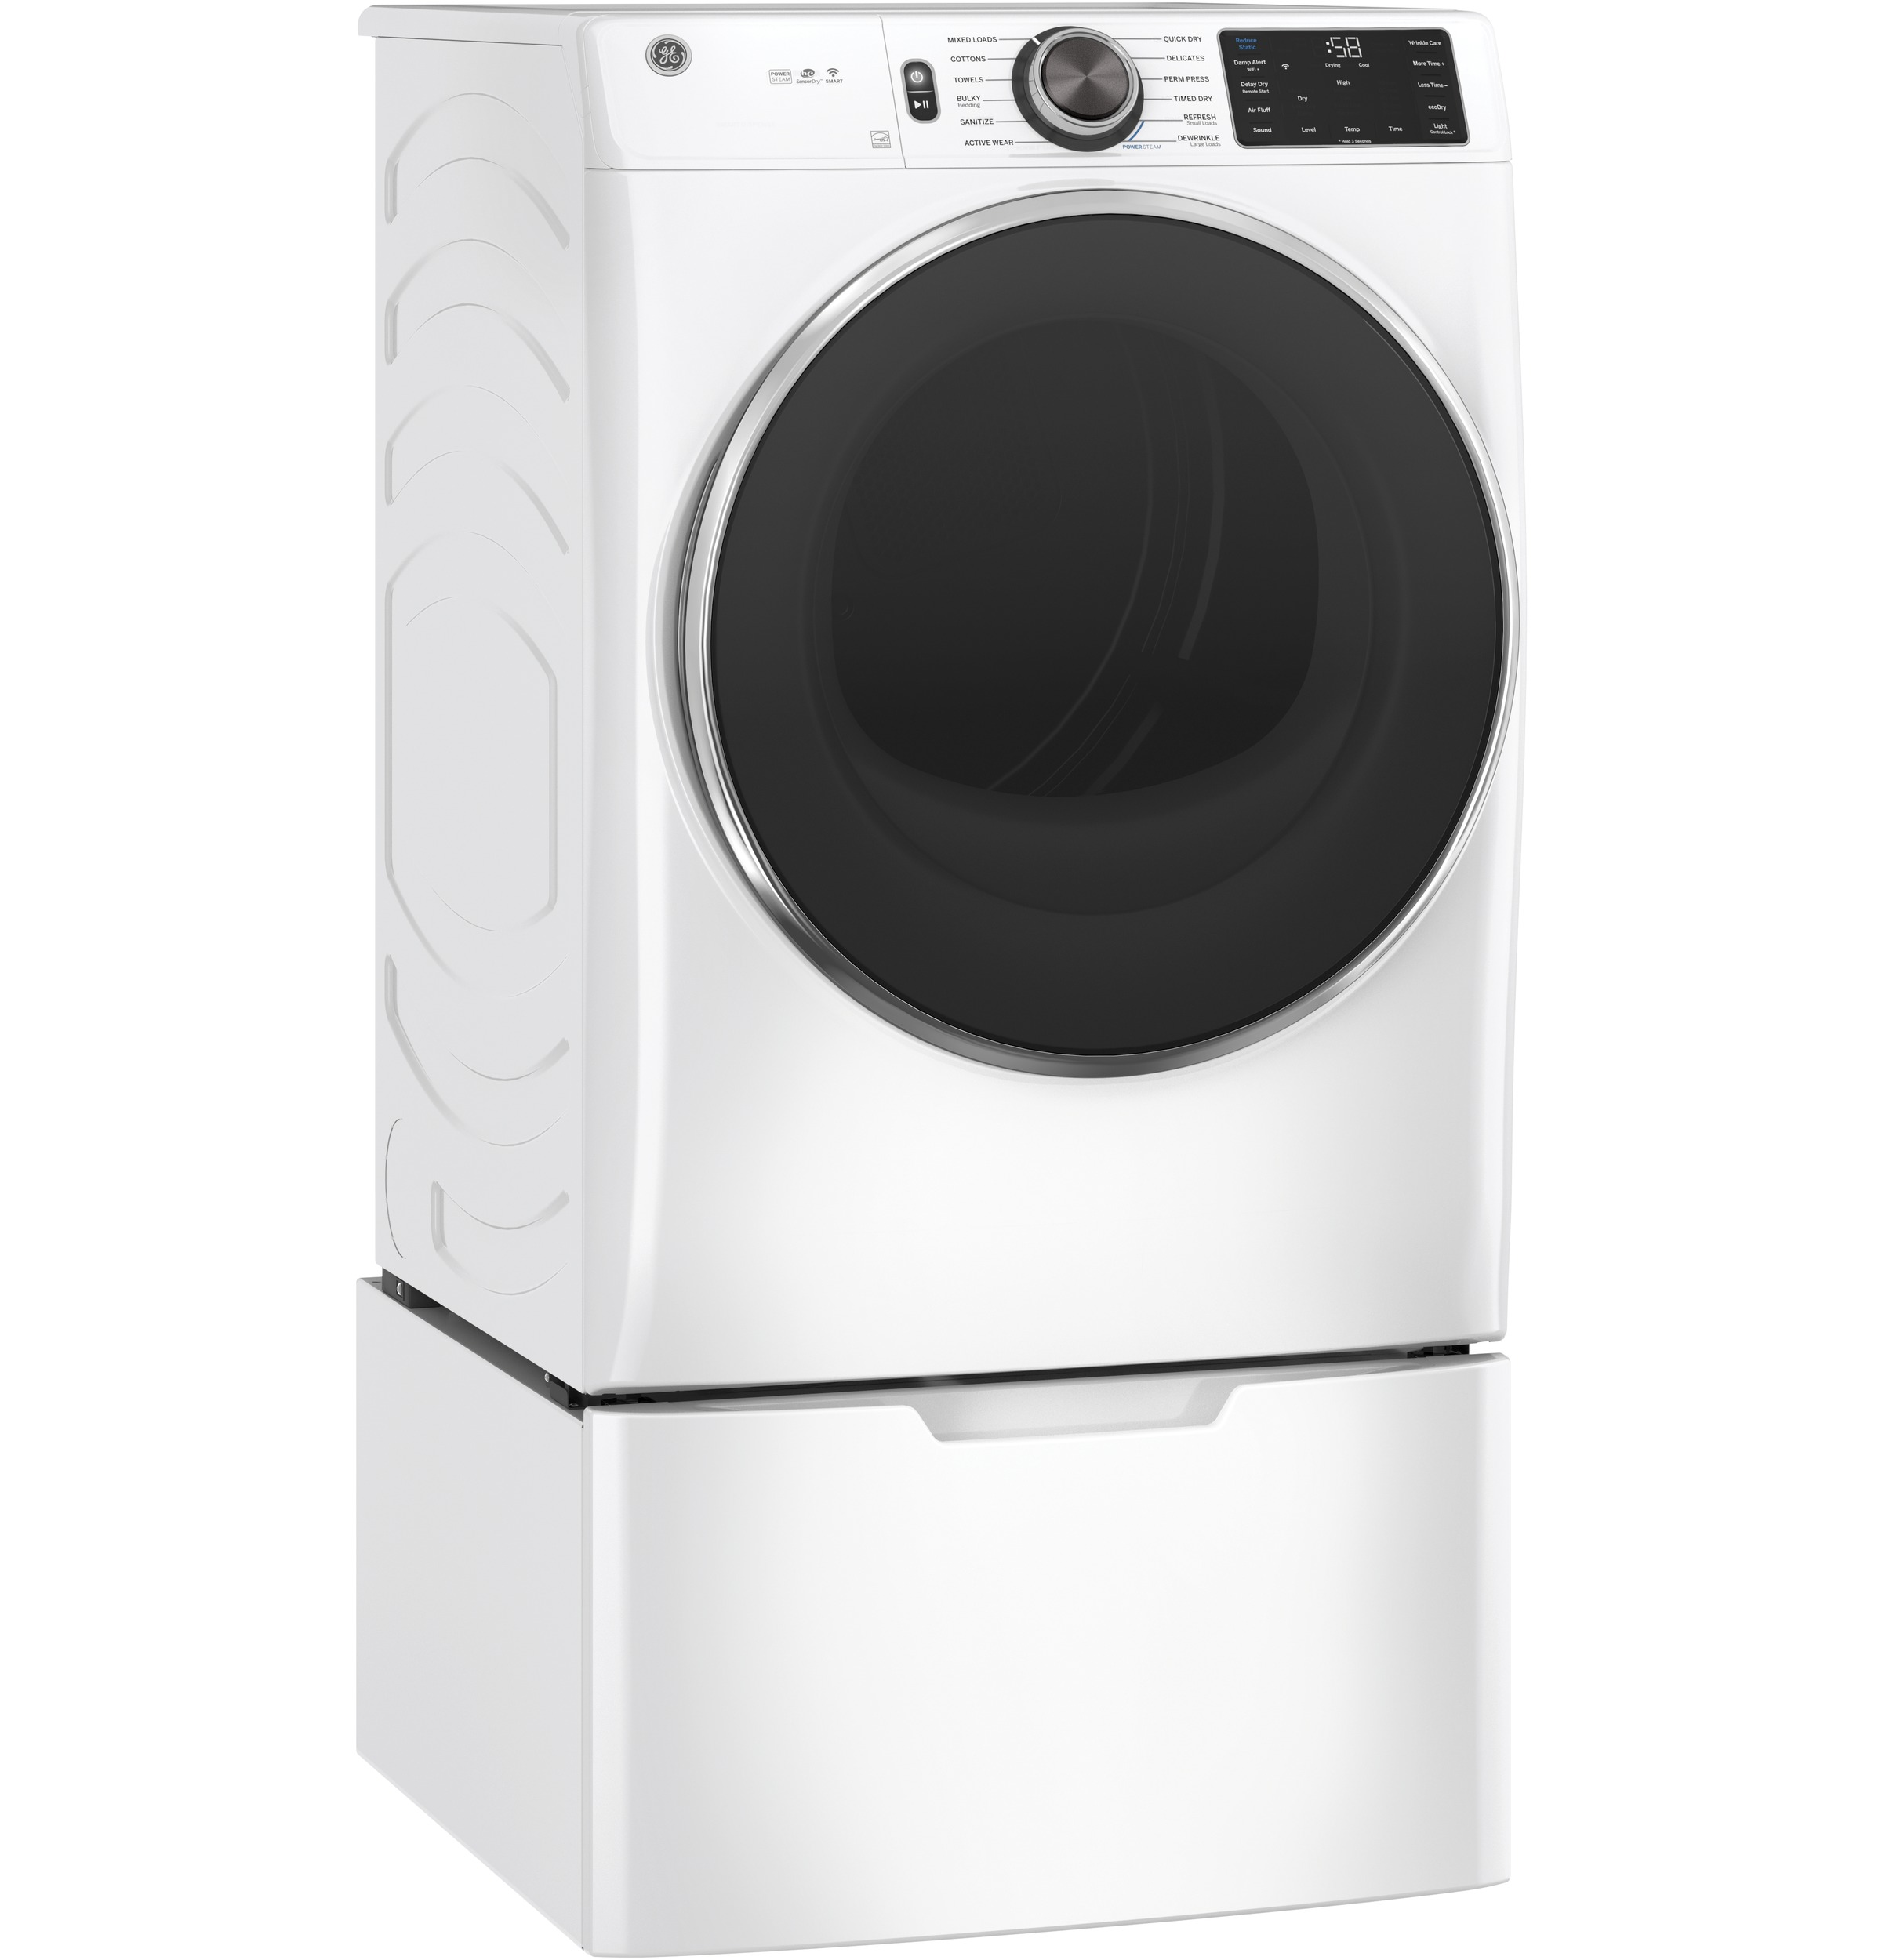 Model: GFD65ESSNWW | GE GE® 7.8 cu. ft. Capacity Smart Front Load Electric Dryer with Steam and Sanitize Cycle